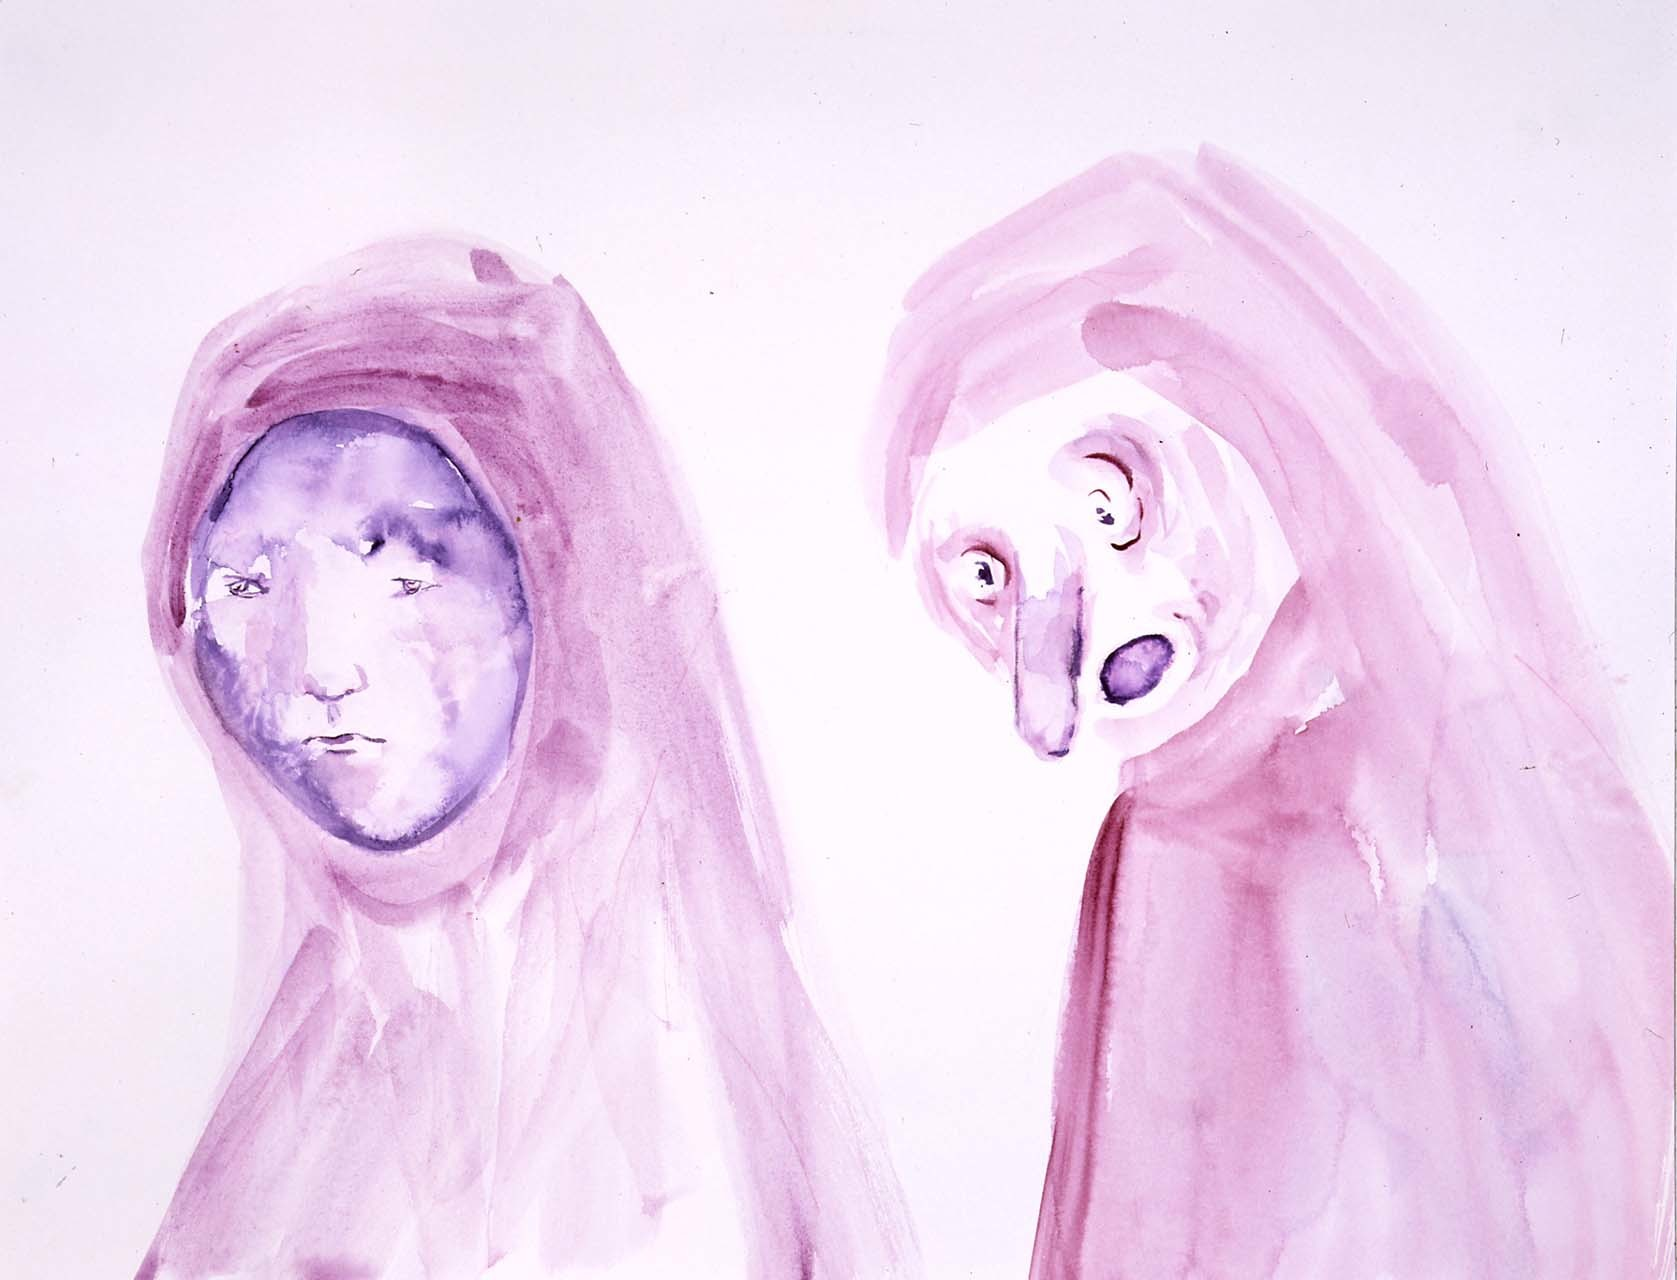 """<div class=""""artwork_caption""""><p>Two Heads in Lila, 2005</p></div>"""